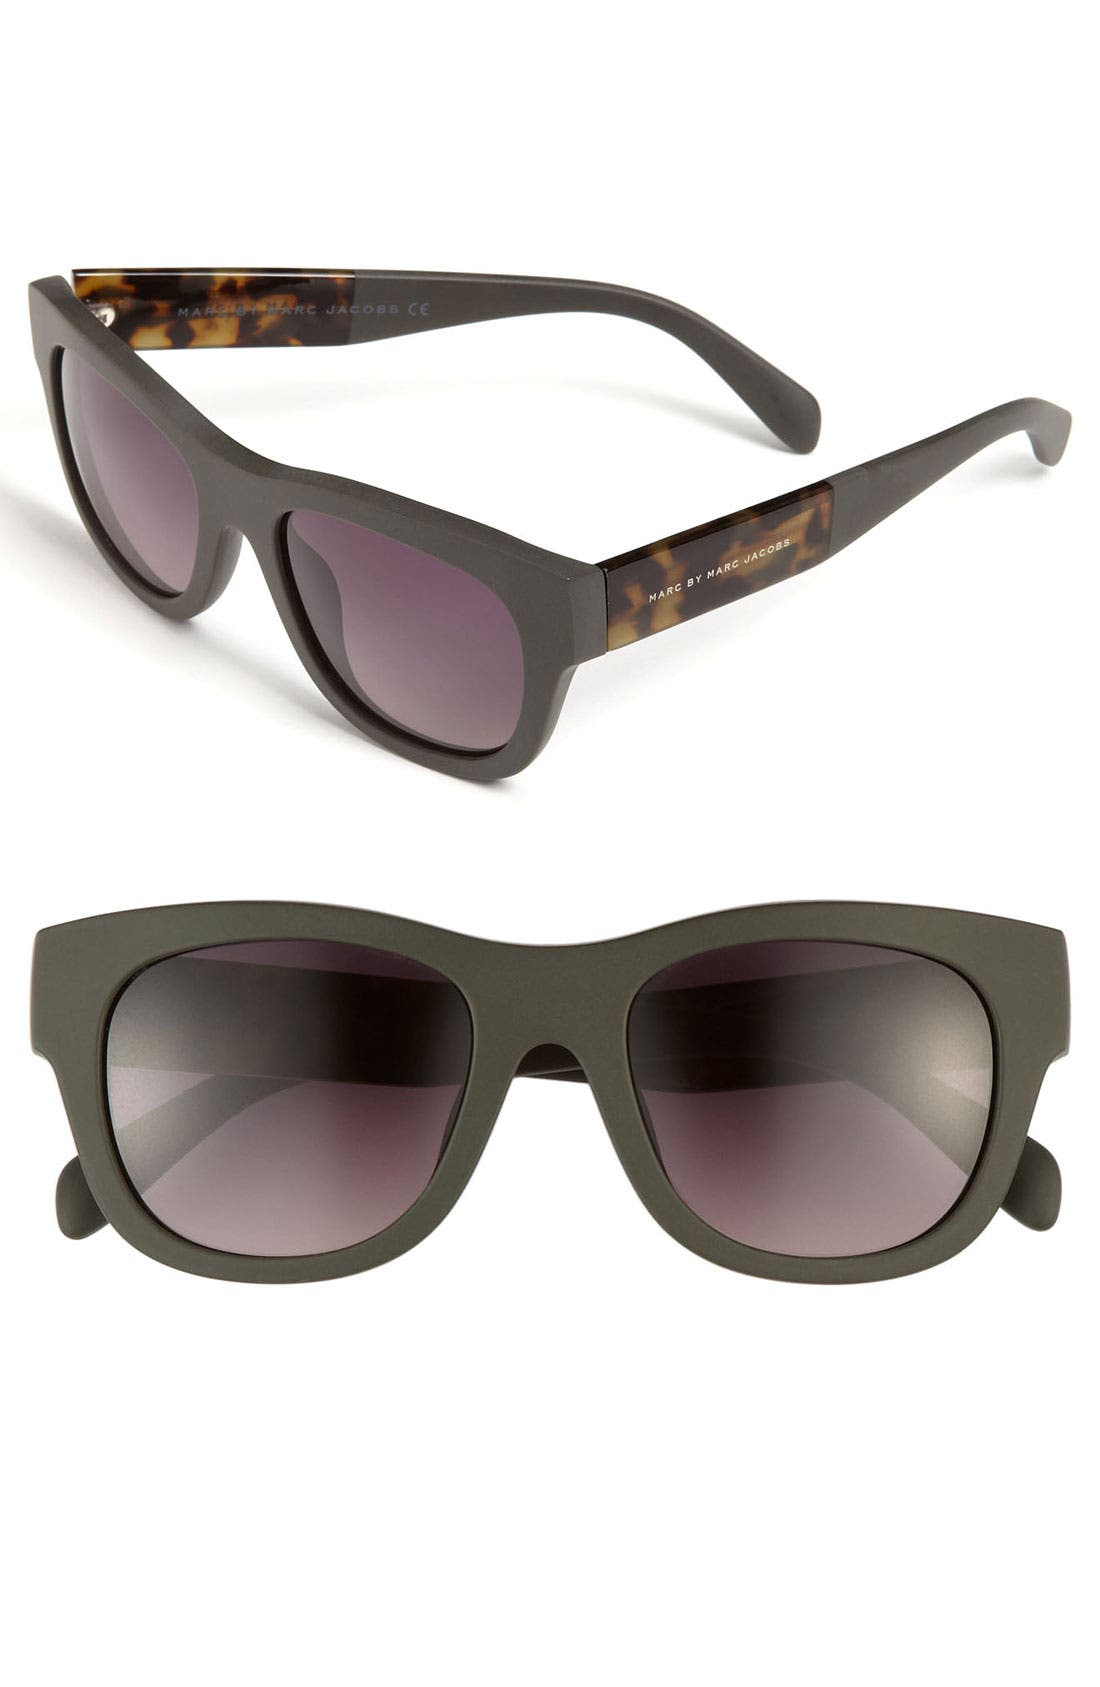 Main Image - MARC BY MARC JACOBS 51mm Retro Sunglasses